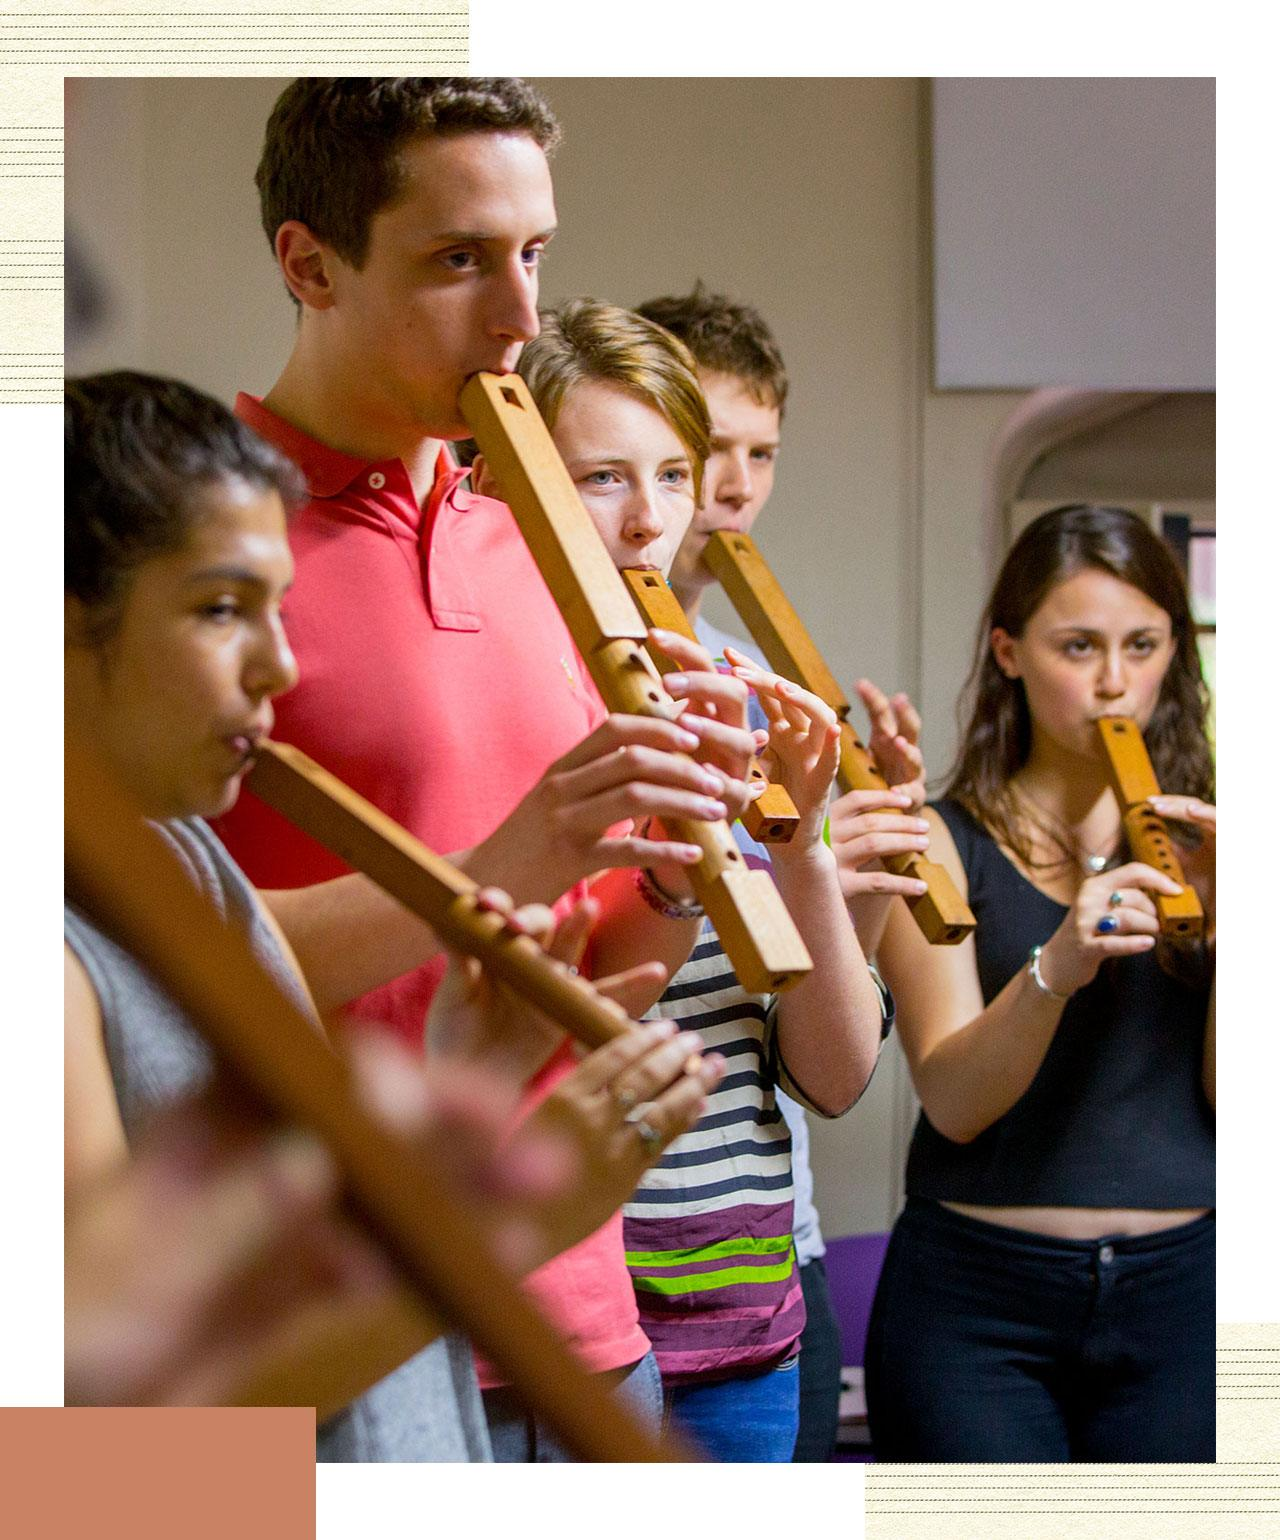 A group of students playing wind instruments.